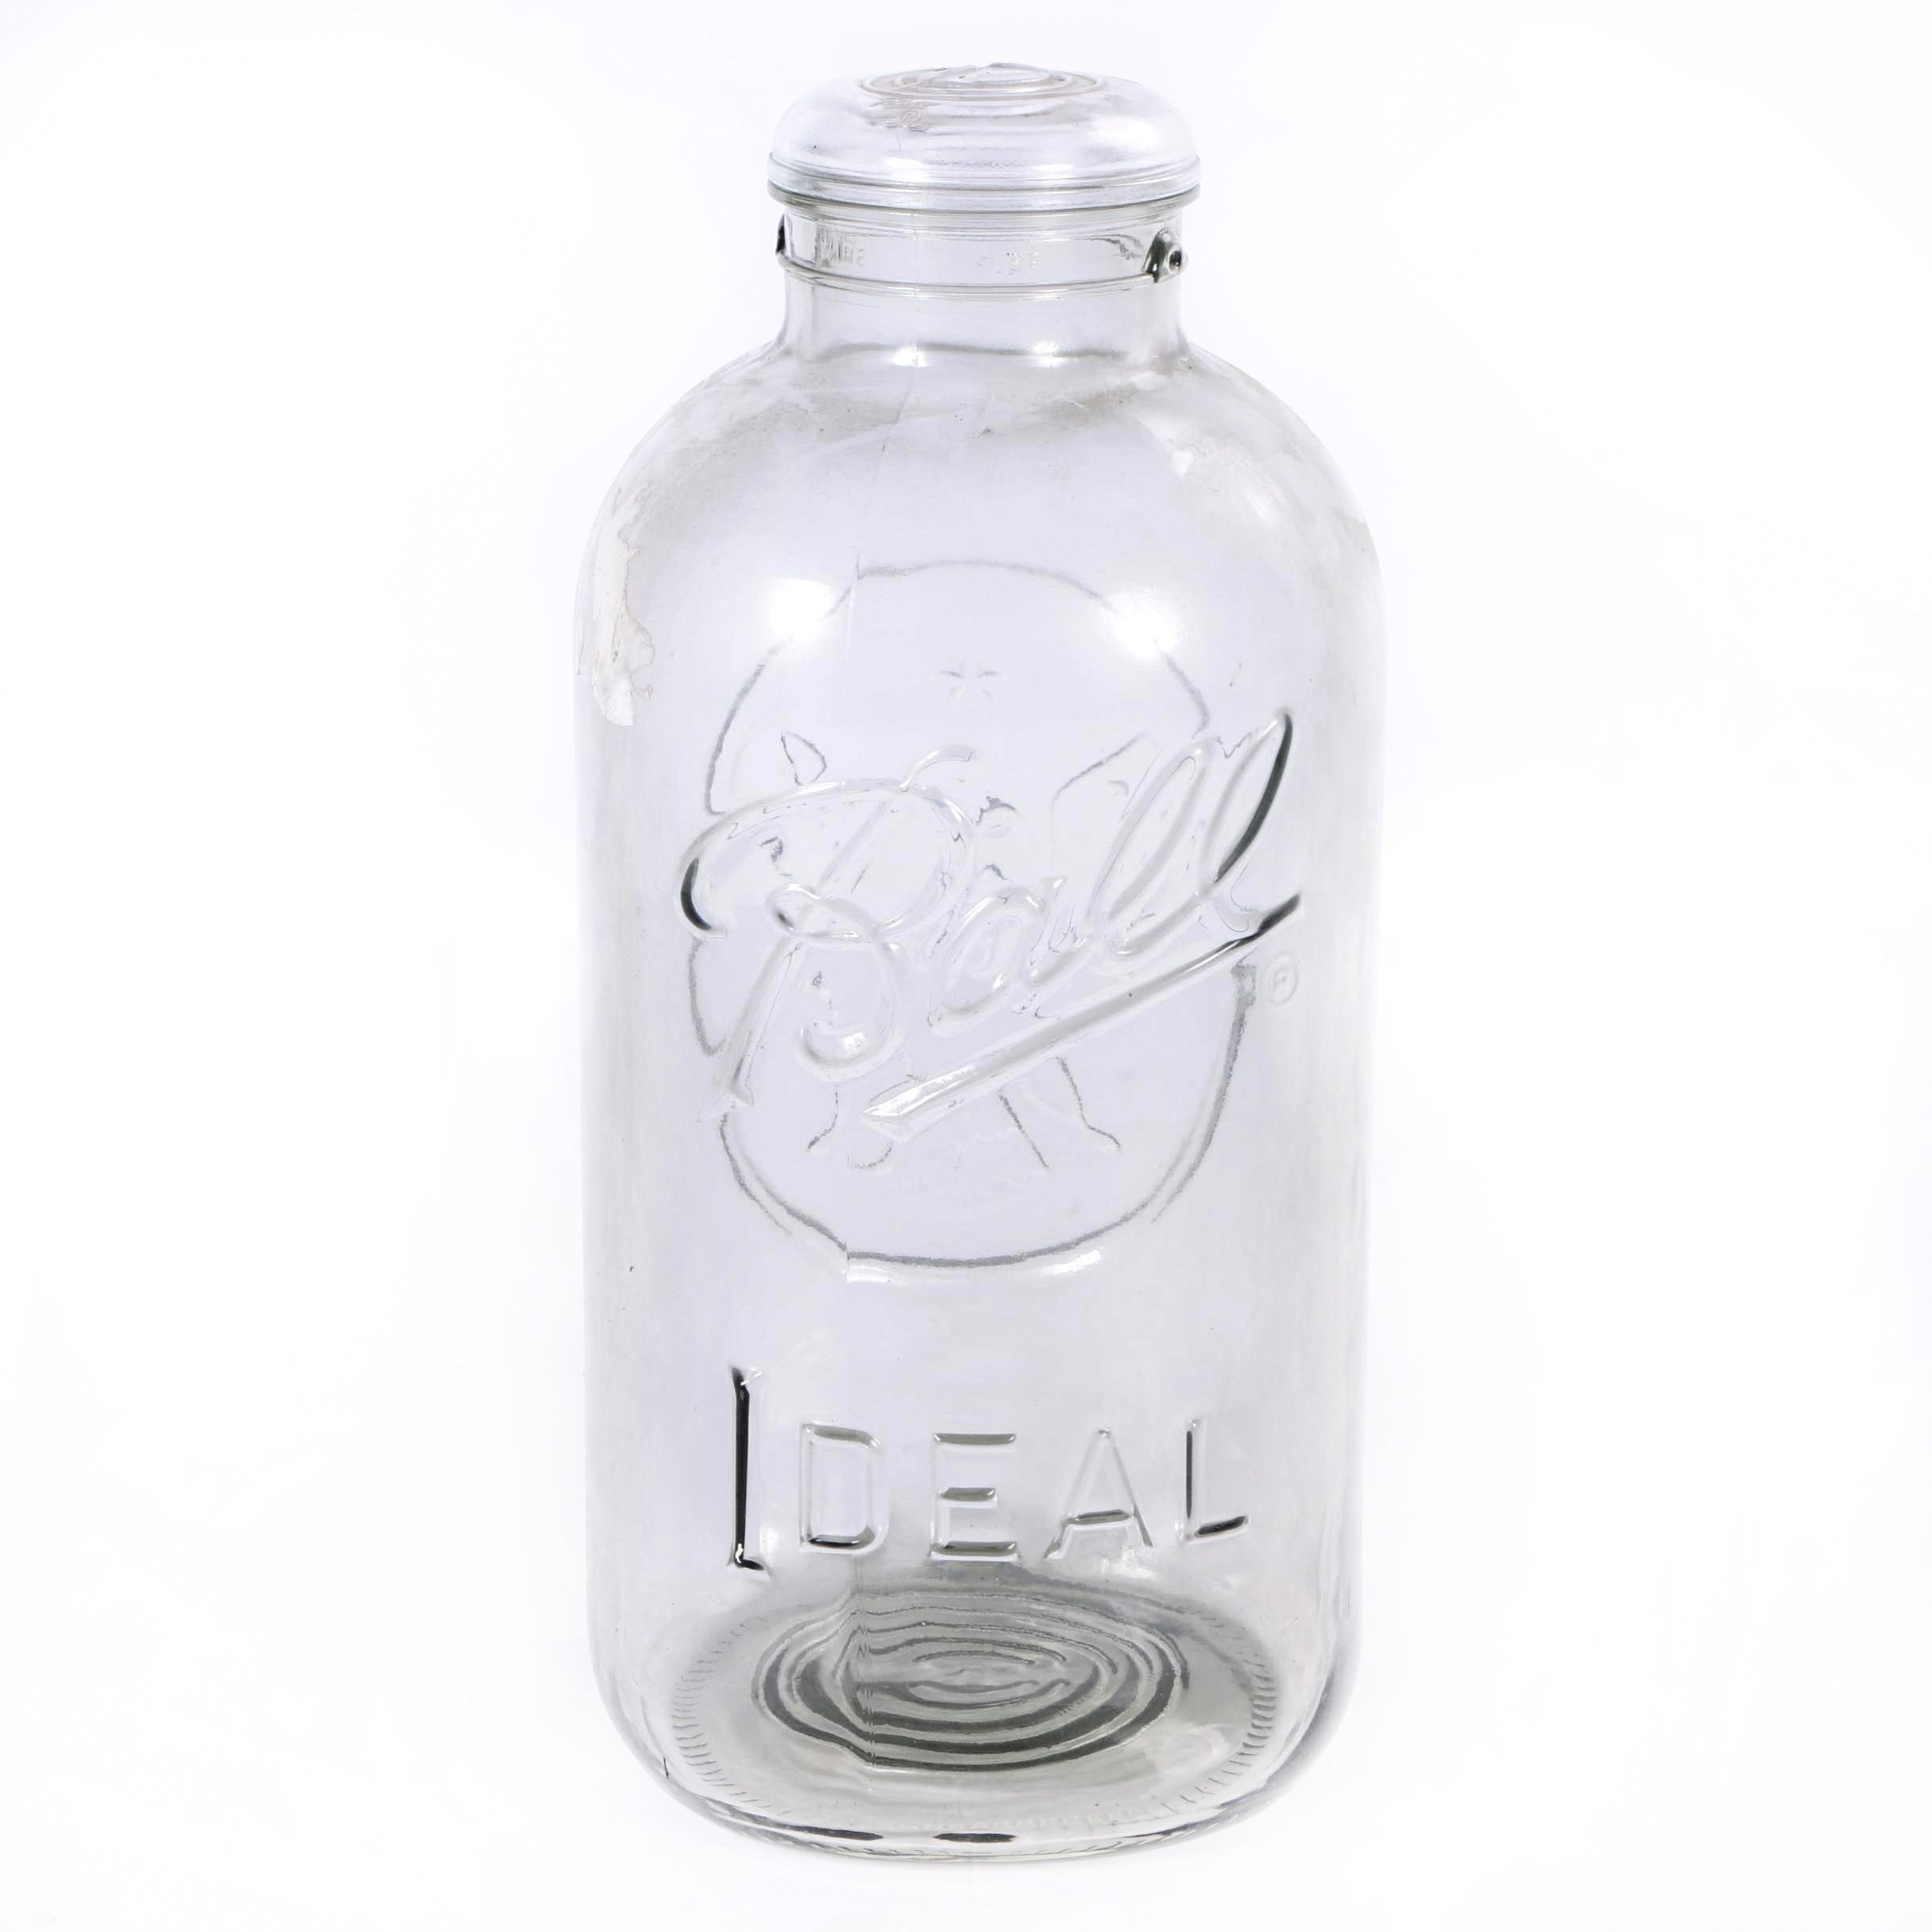 "Oversized Ball ""Ideal"" Jar"